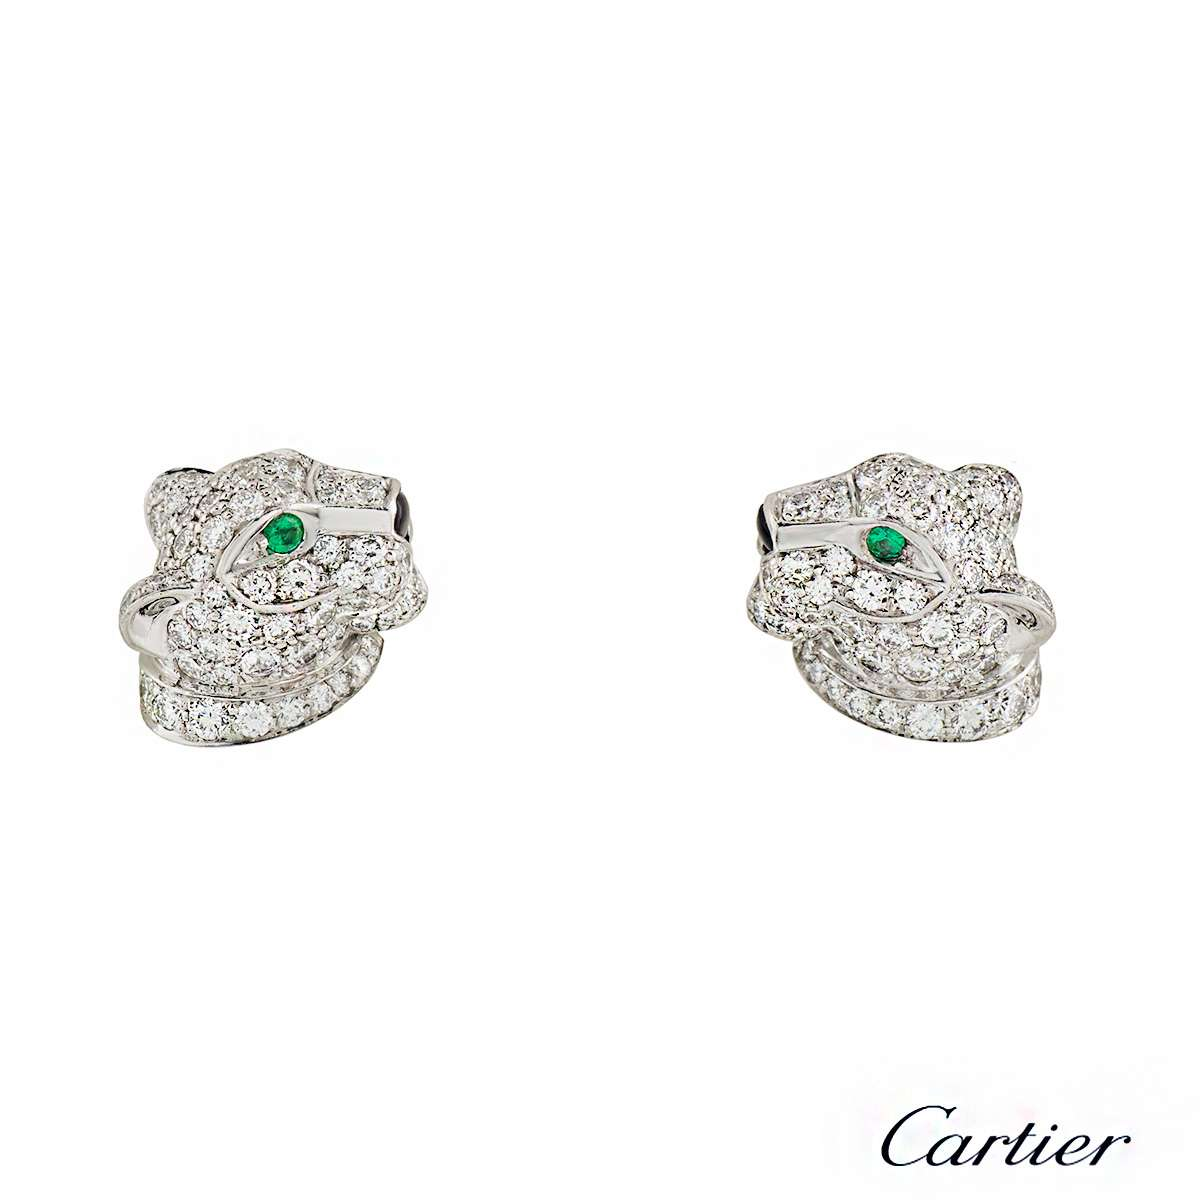 Cartier Panthere Diamond, Emerald and Onyx Earrings